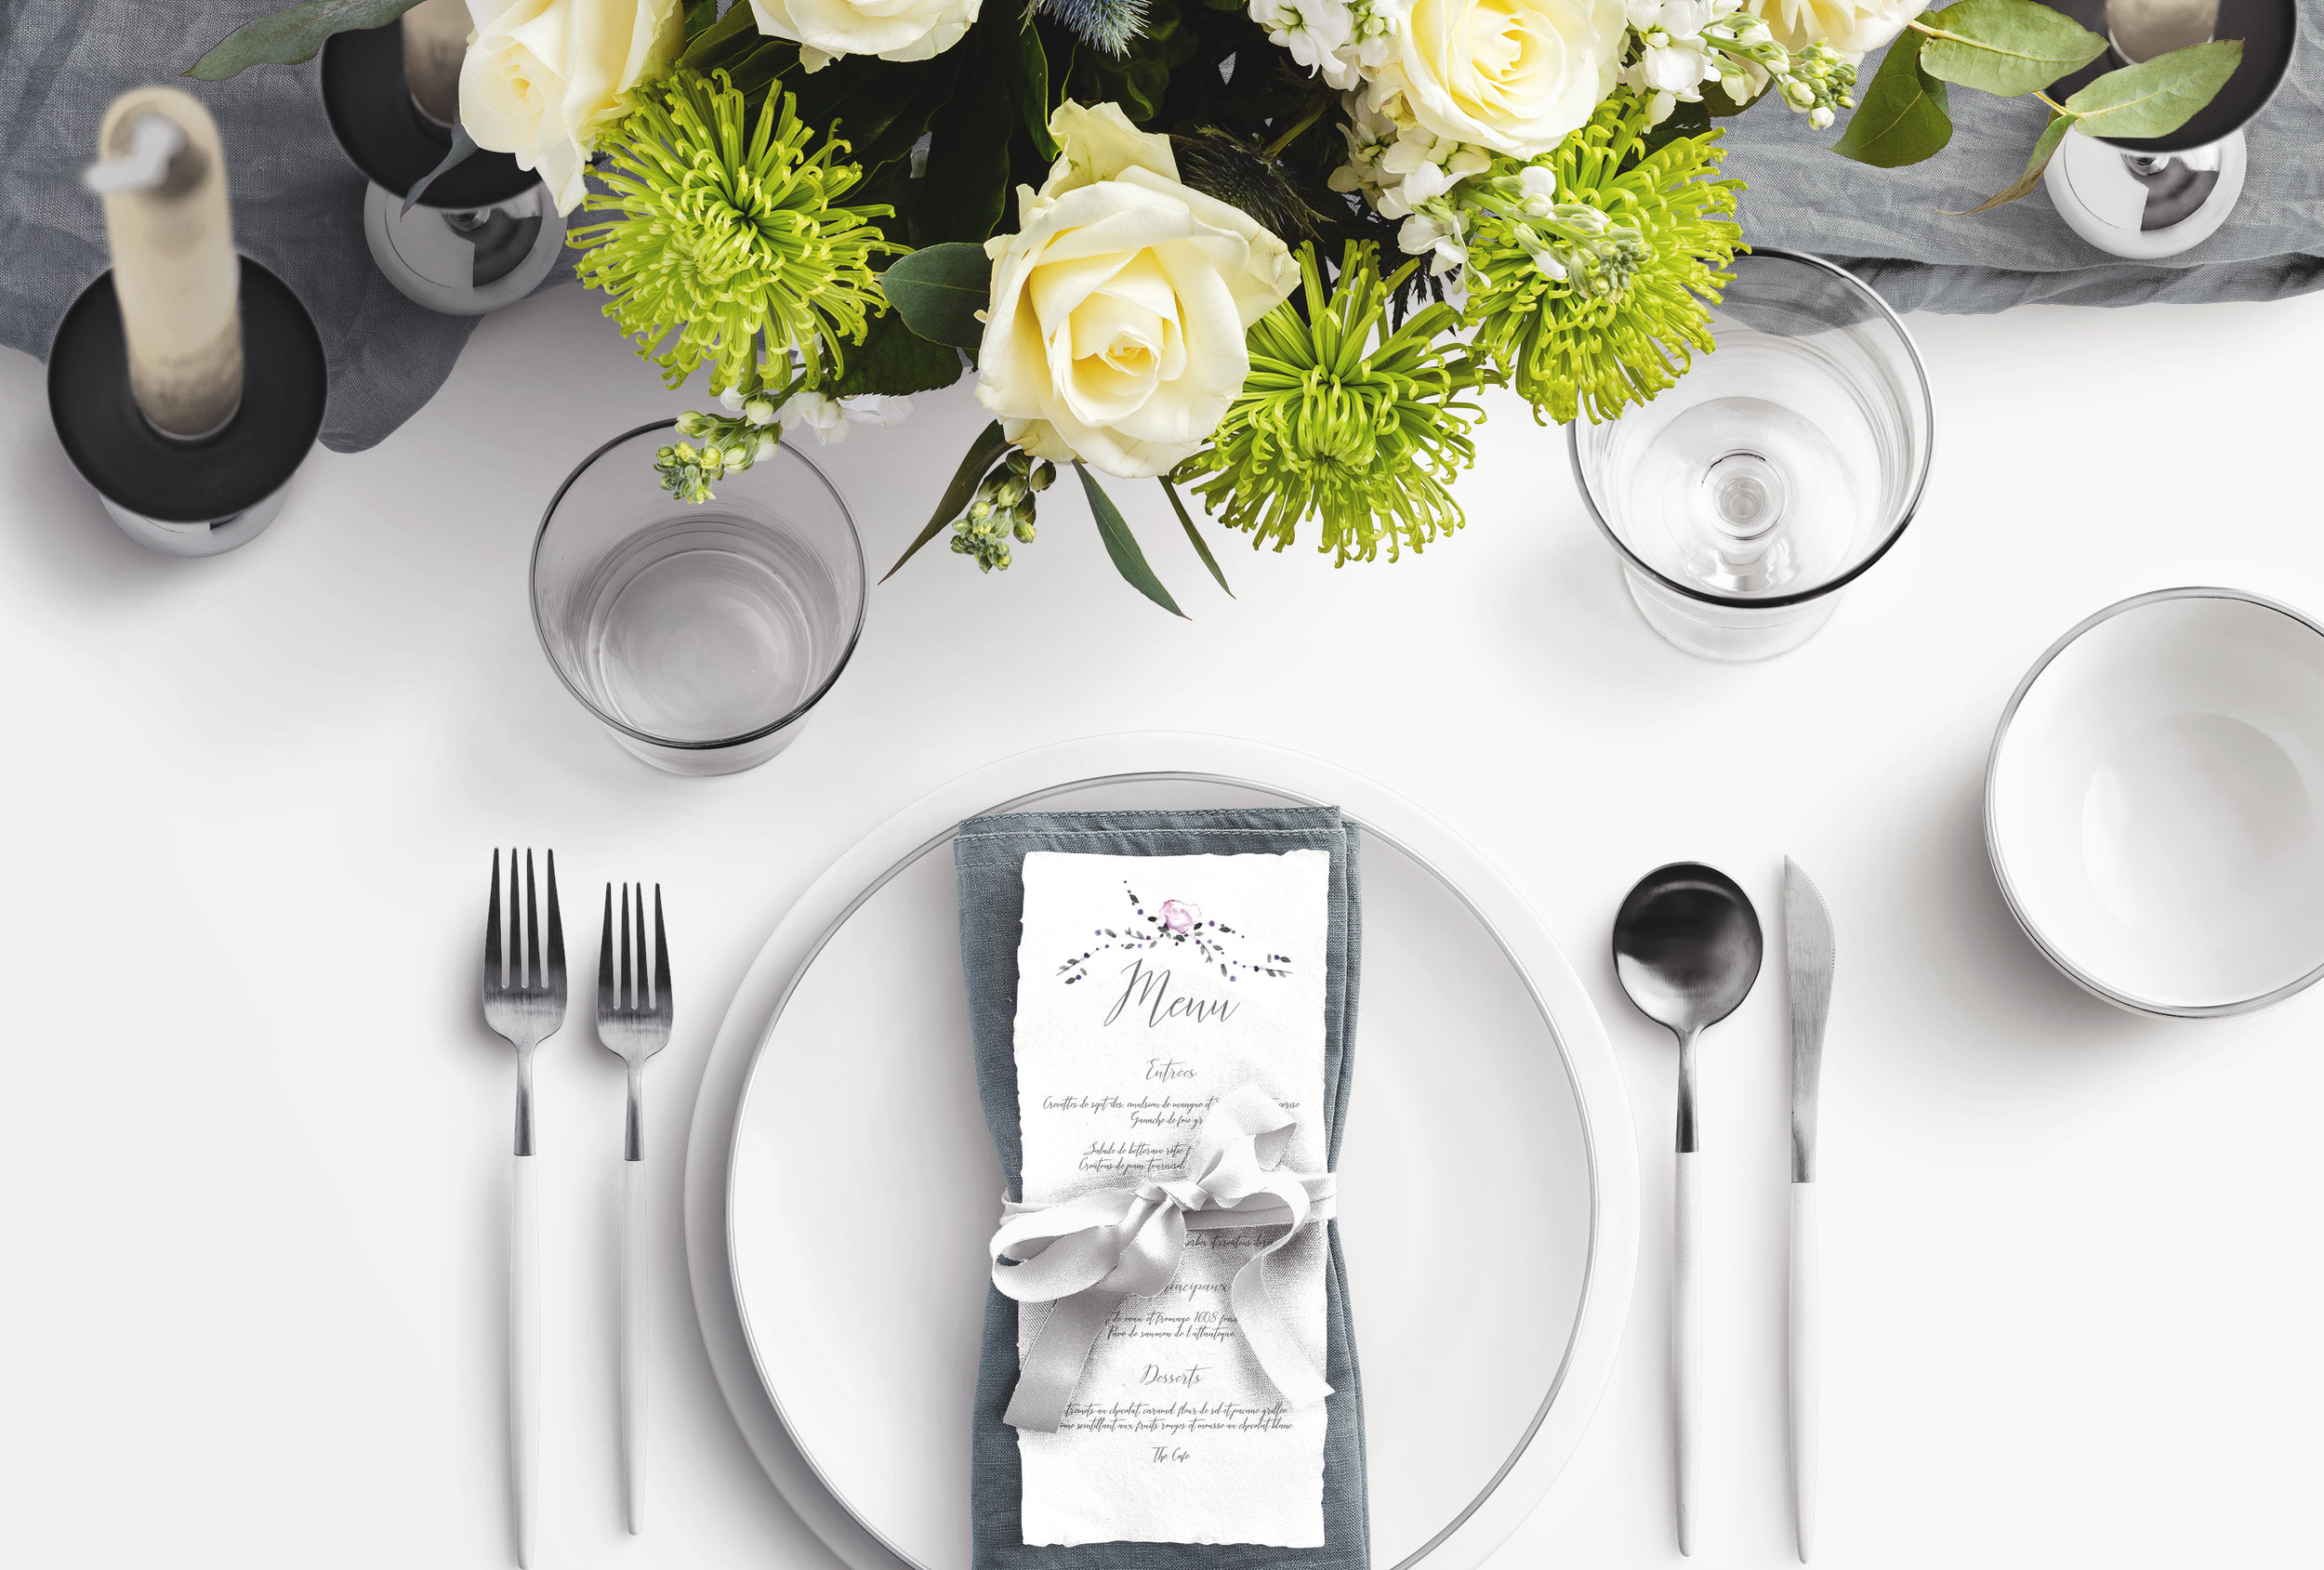 wedding-collection-table-setting-001 SILVER.jpg